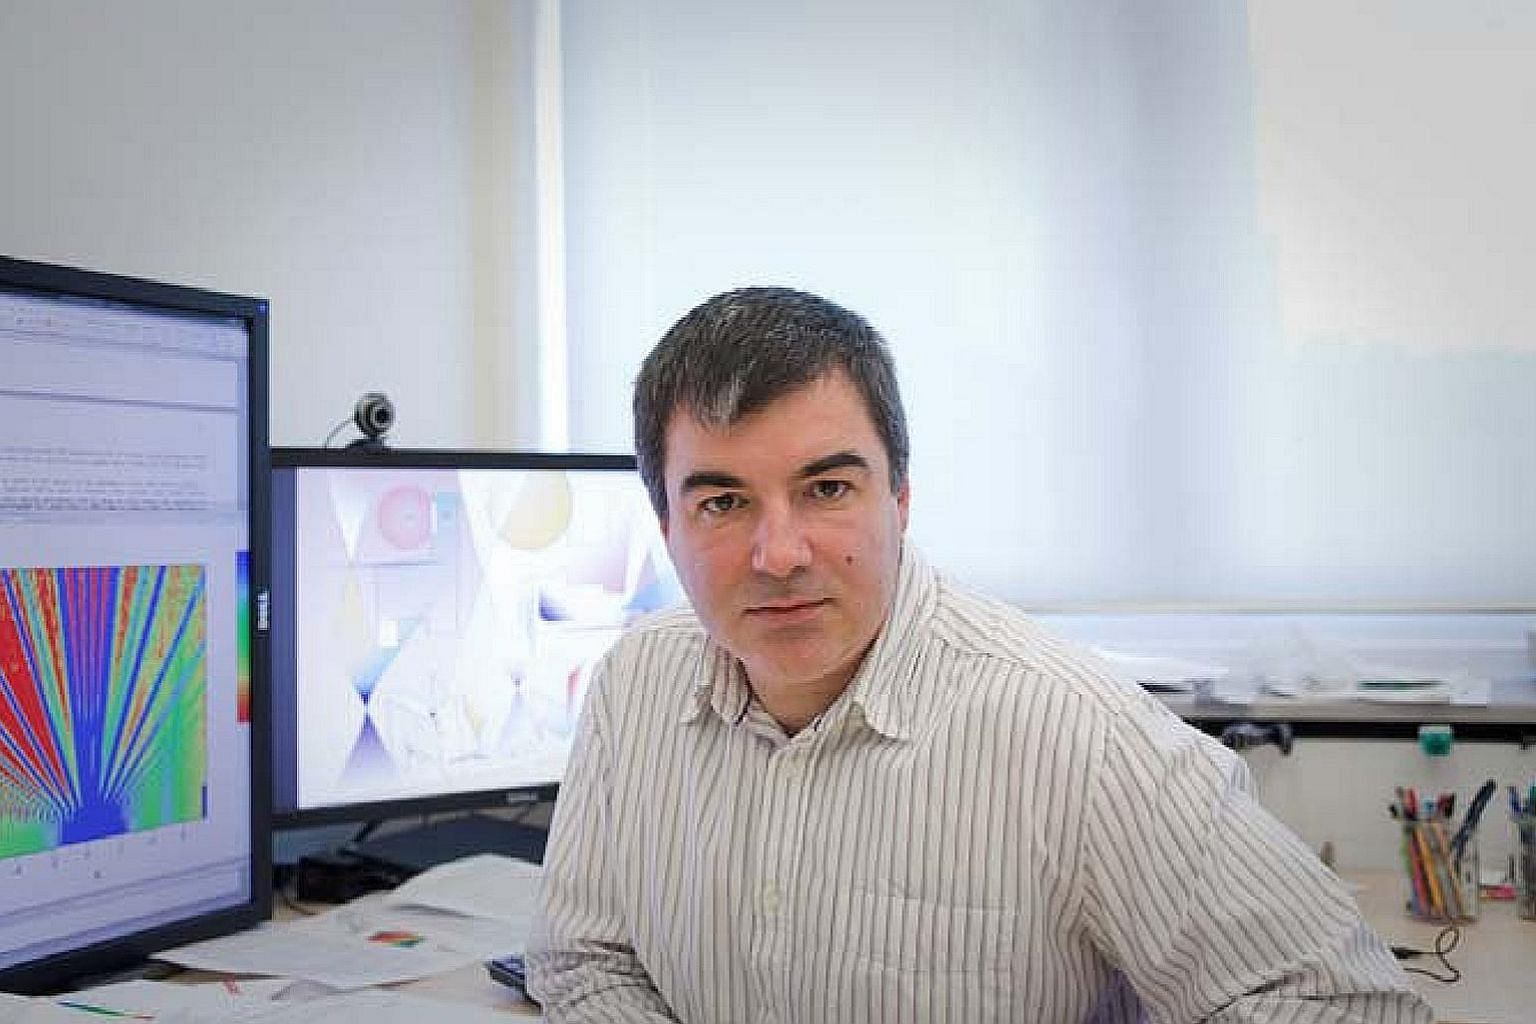 """Professor Konstantin Novoselov said he decided to move to Singapore because of the strong research base in physics and materials science, as well as the """"flexible, dynamic government"""" which has made research a key focus."""